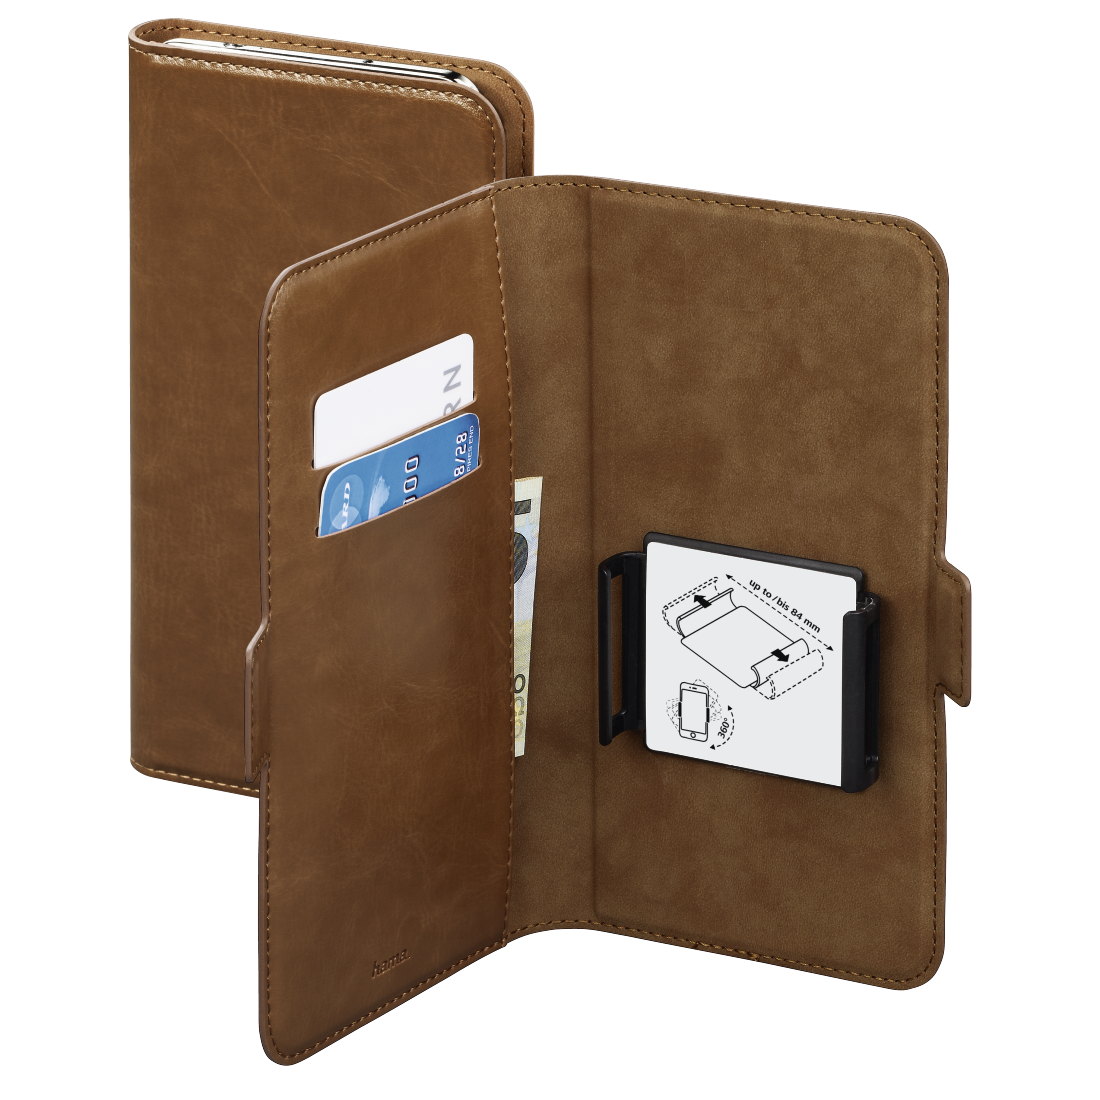 abx High-Res Image - Hama, Smart Move Booklet Case, size XXL (5.2 - 5.8), brown